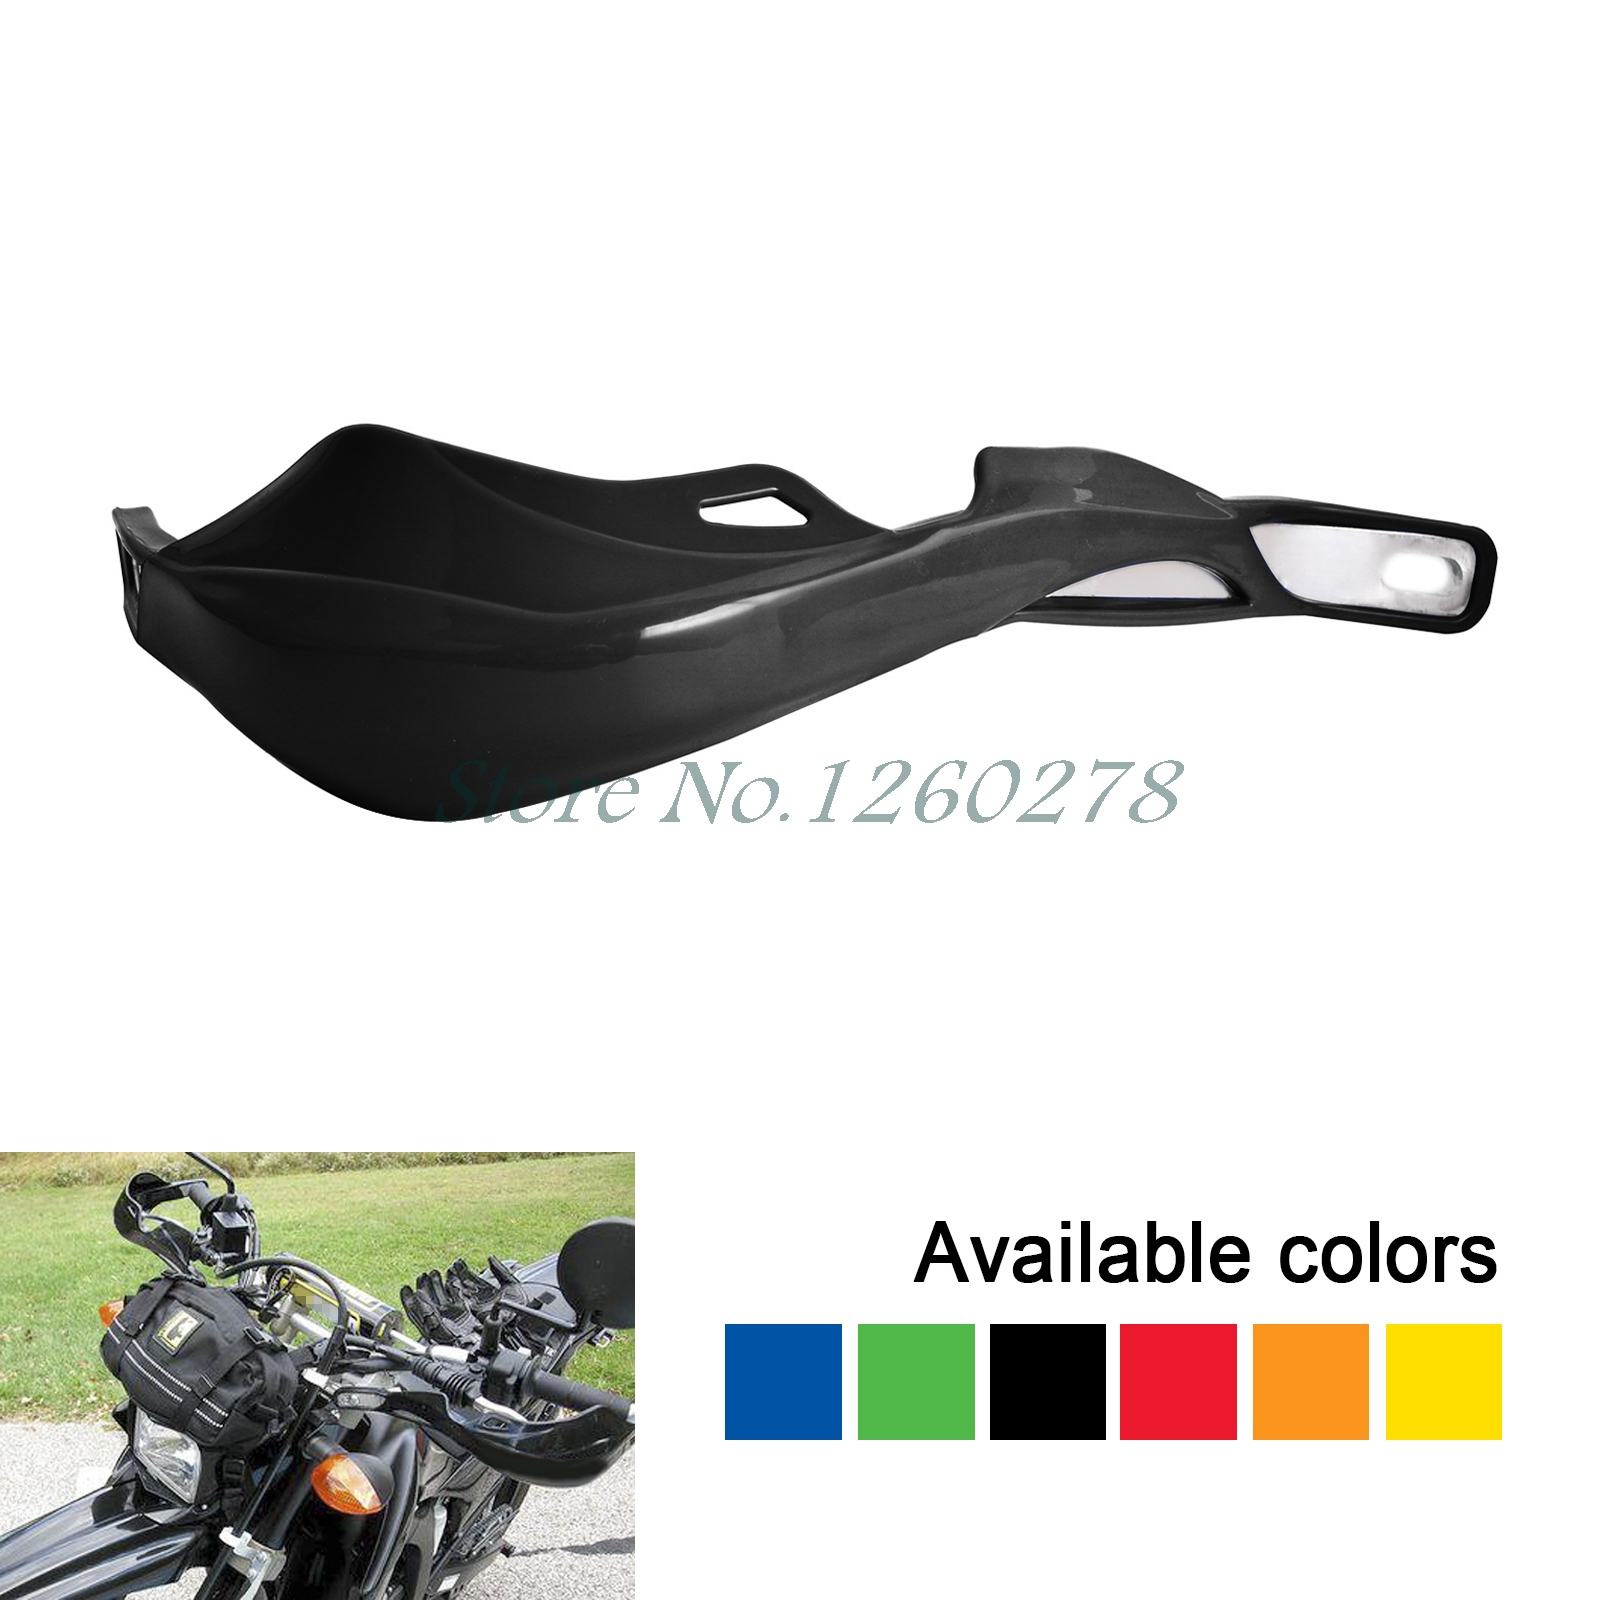 Universal 28mm Handlebar Handguard Hand Guard Motorcycle Pit Dirt Bike ATV Clutch Brake Falling Protection